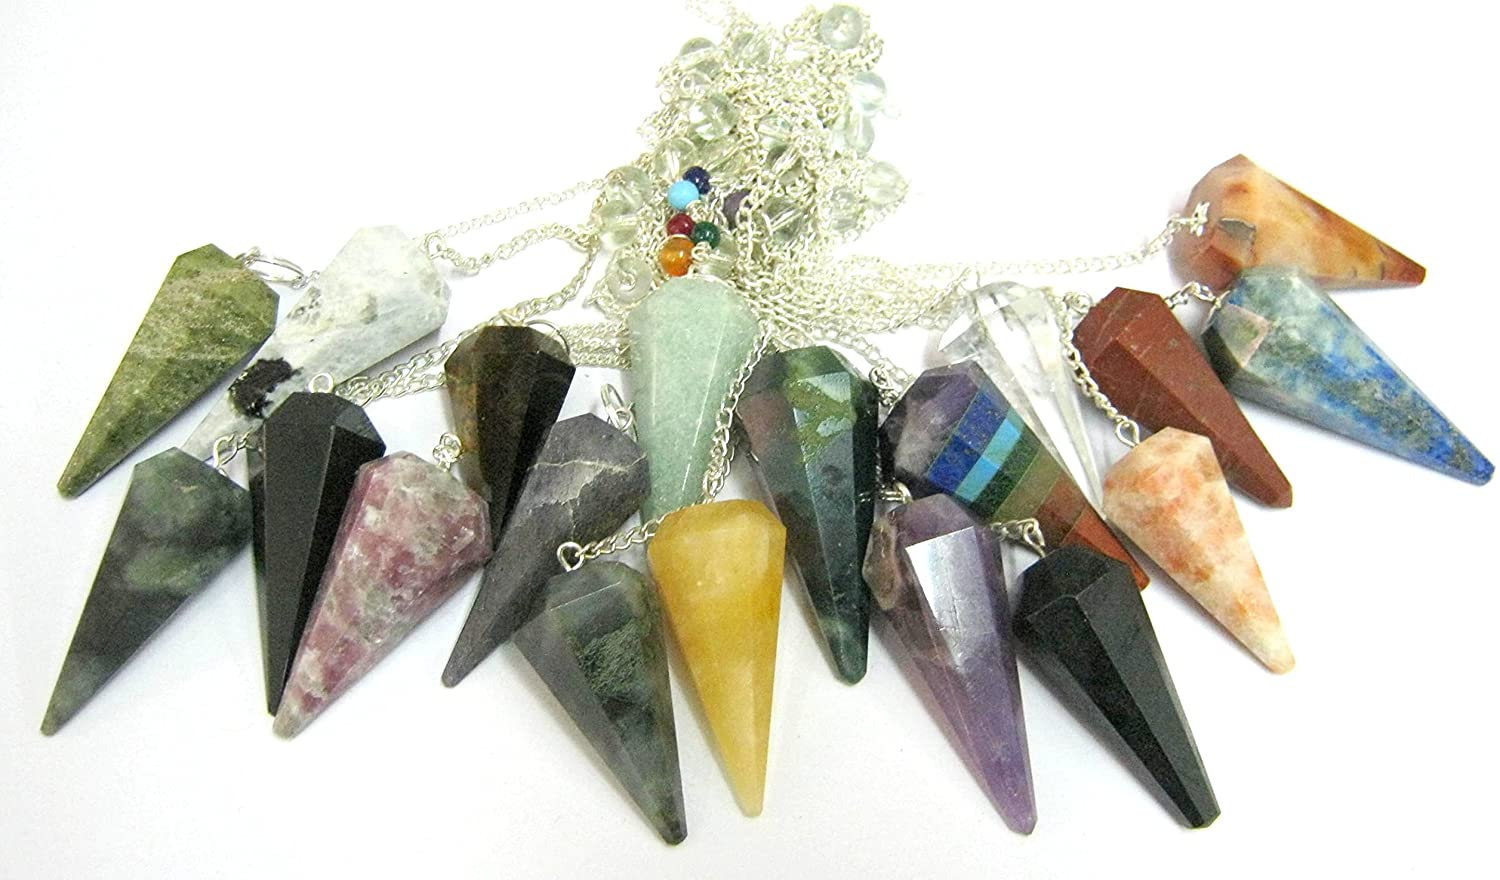 CRYSTALMIRACLE Exclusive Set of Fifteen Gemstones Cone Pendulums Crystal Healing Reiki DOWSING FENG Shui Gift Metaphysical Powerful Meditation Psychic Energy Success Prosperity Health Wealth